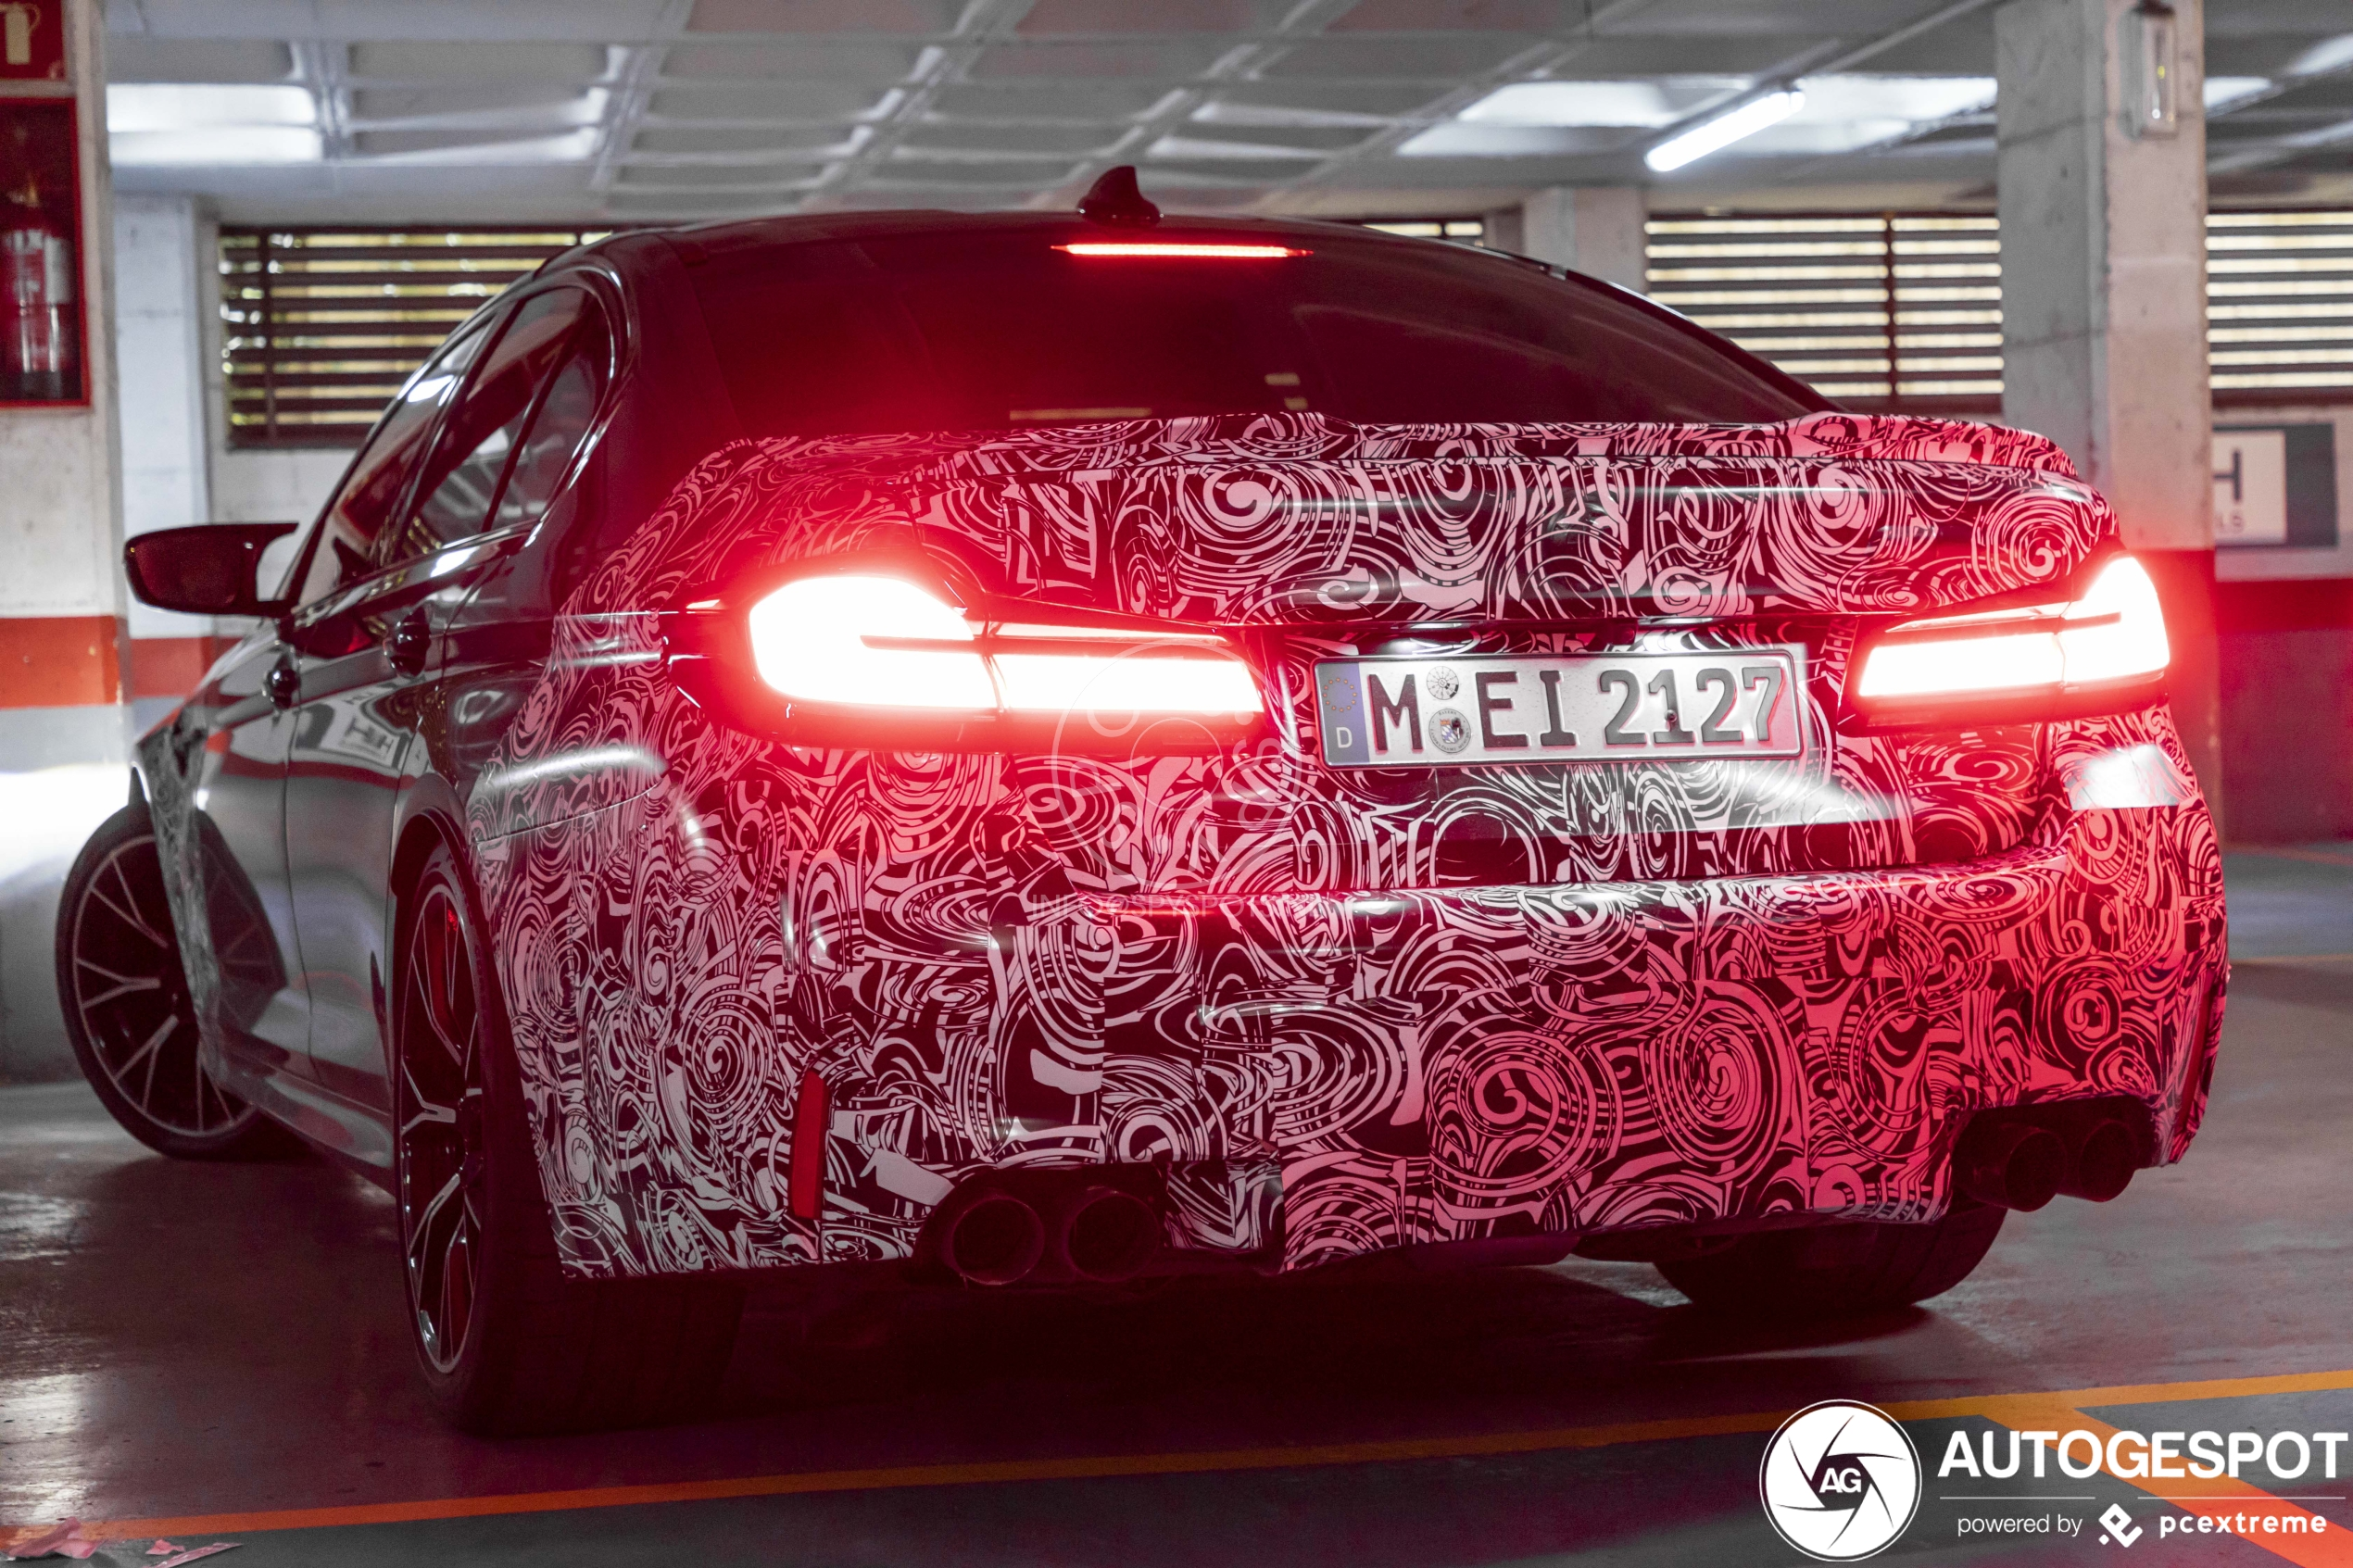 Spyshots: BMW M5 CS will be fastest BMW ever